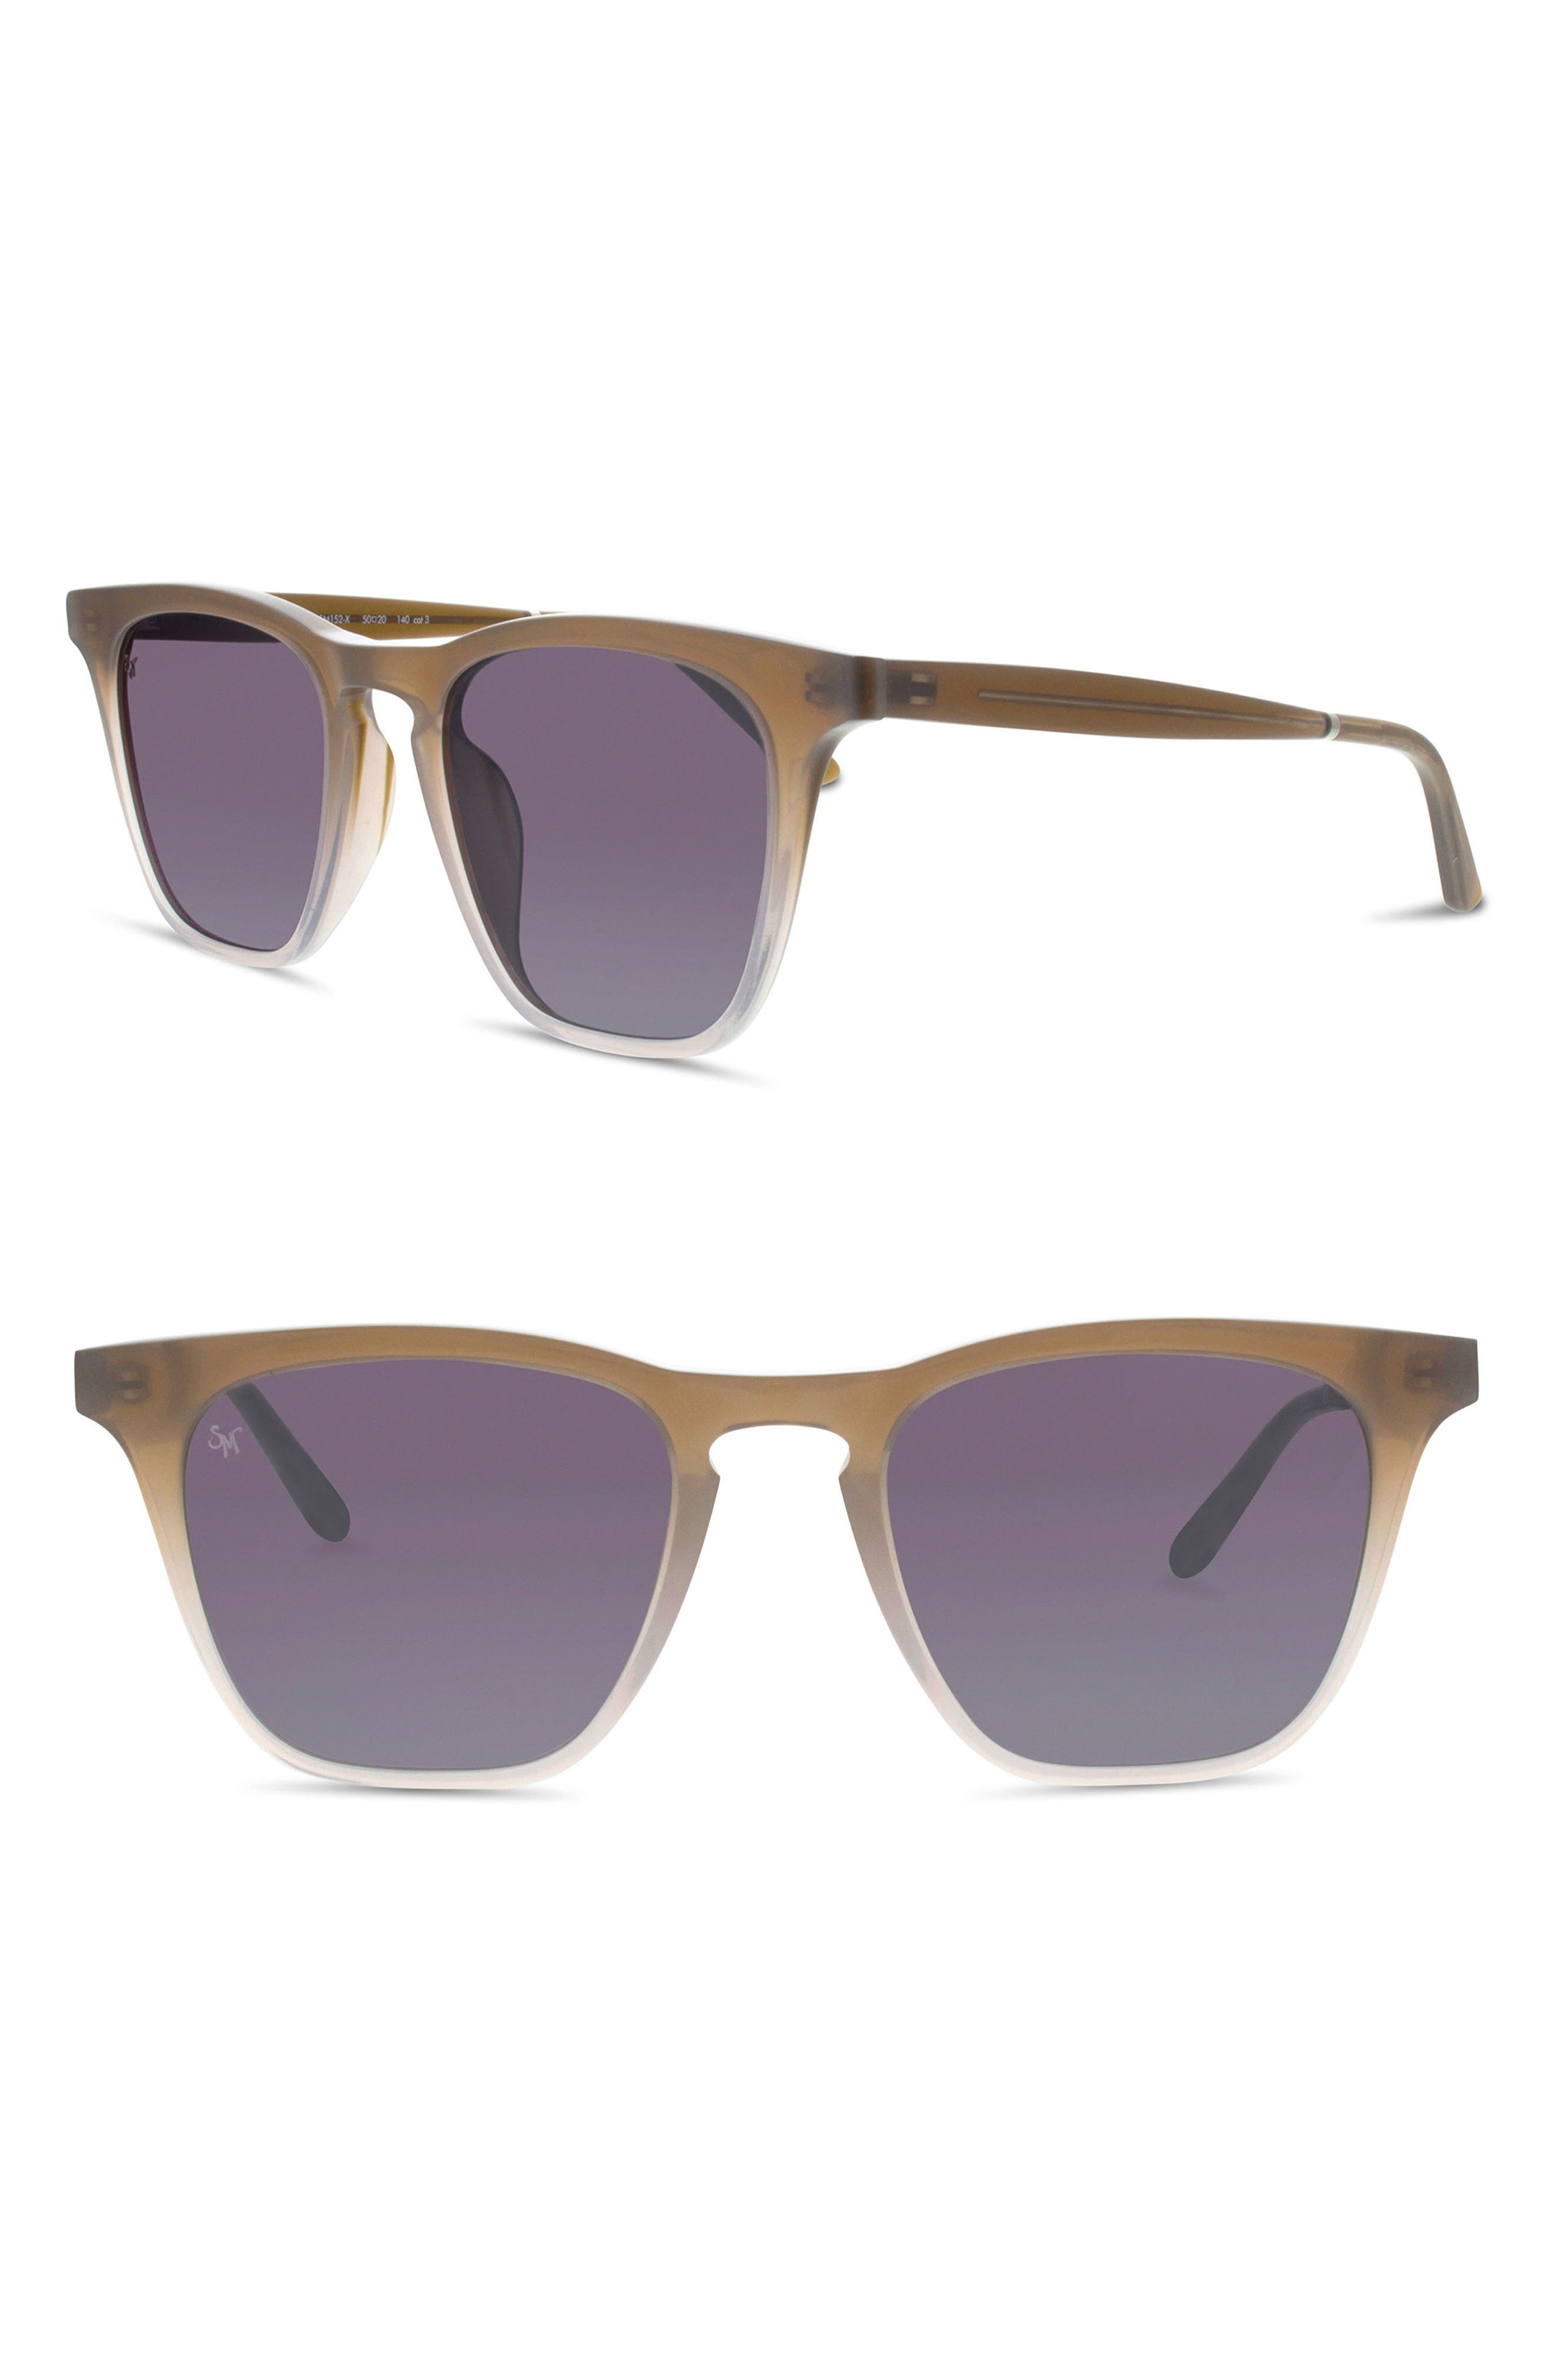 SMOKE X MIRRORS ROCKET 88 50MM SQUARE SUNGLASSES - TAUPE/ SILVER MIRROR